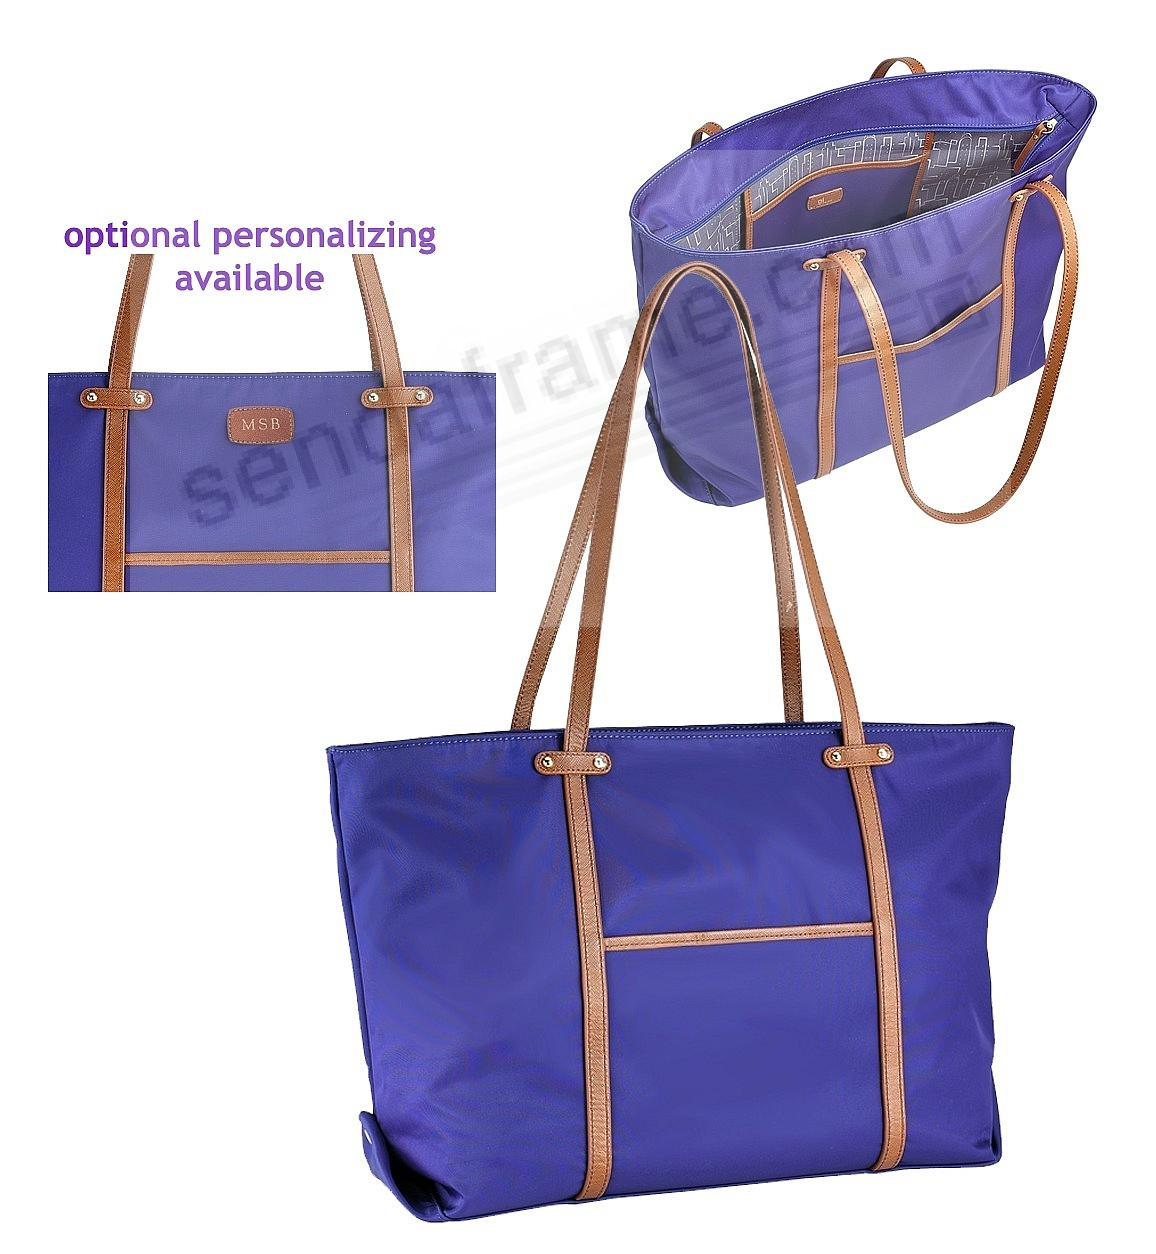 The Original UNION TOTE crafted in Cobalt-Blue Nylon and Soft Leather by Graphic Image™